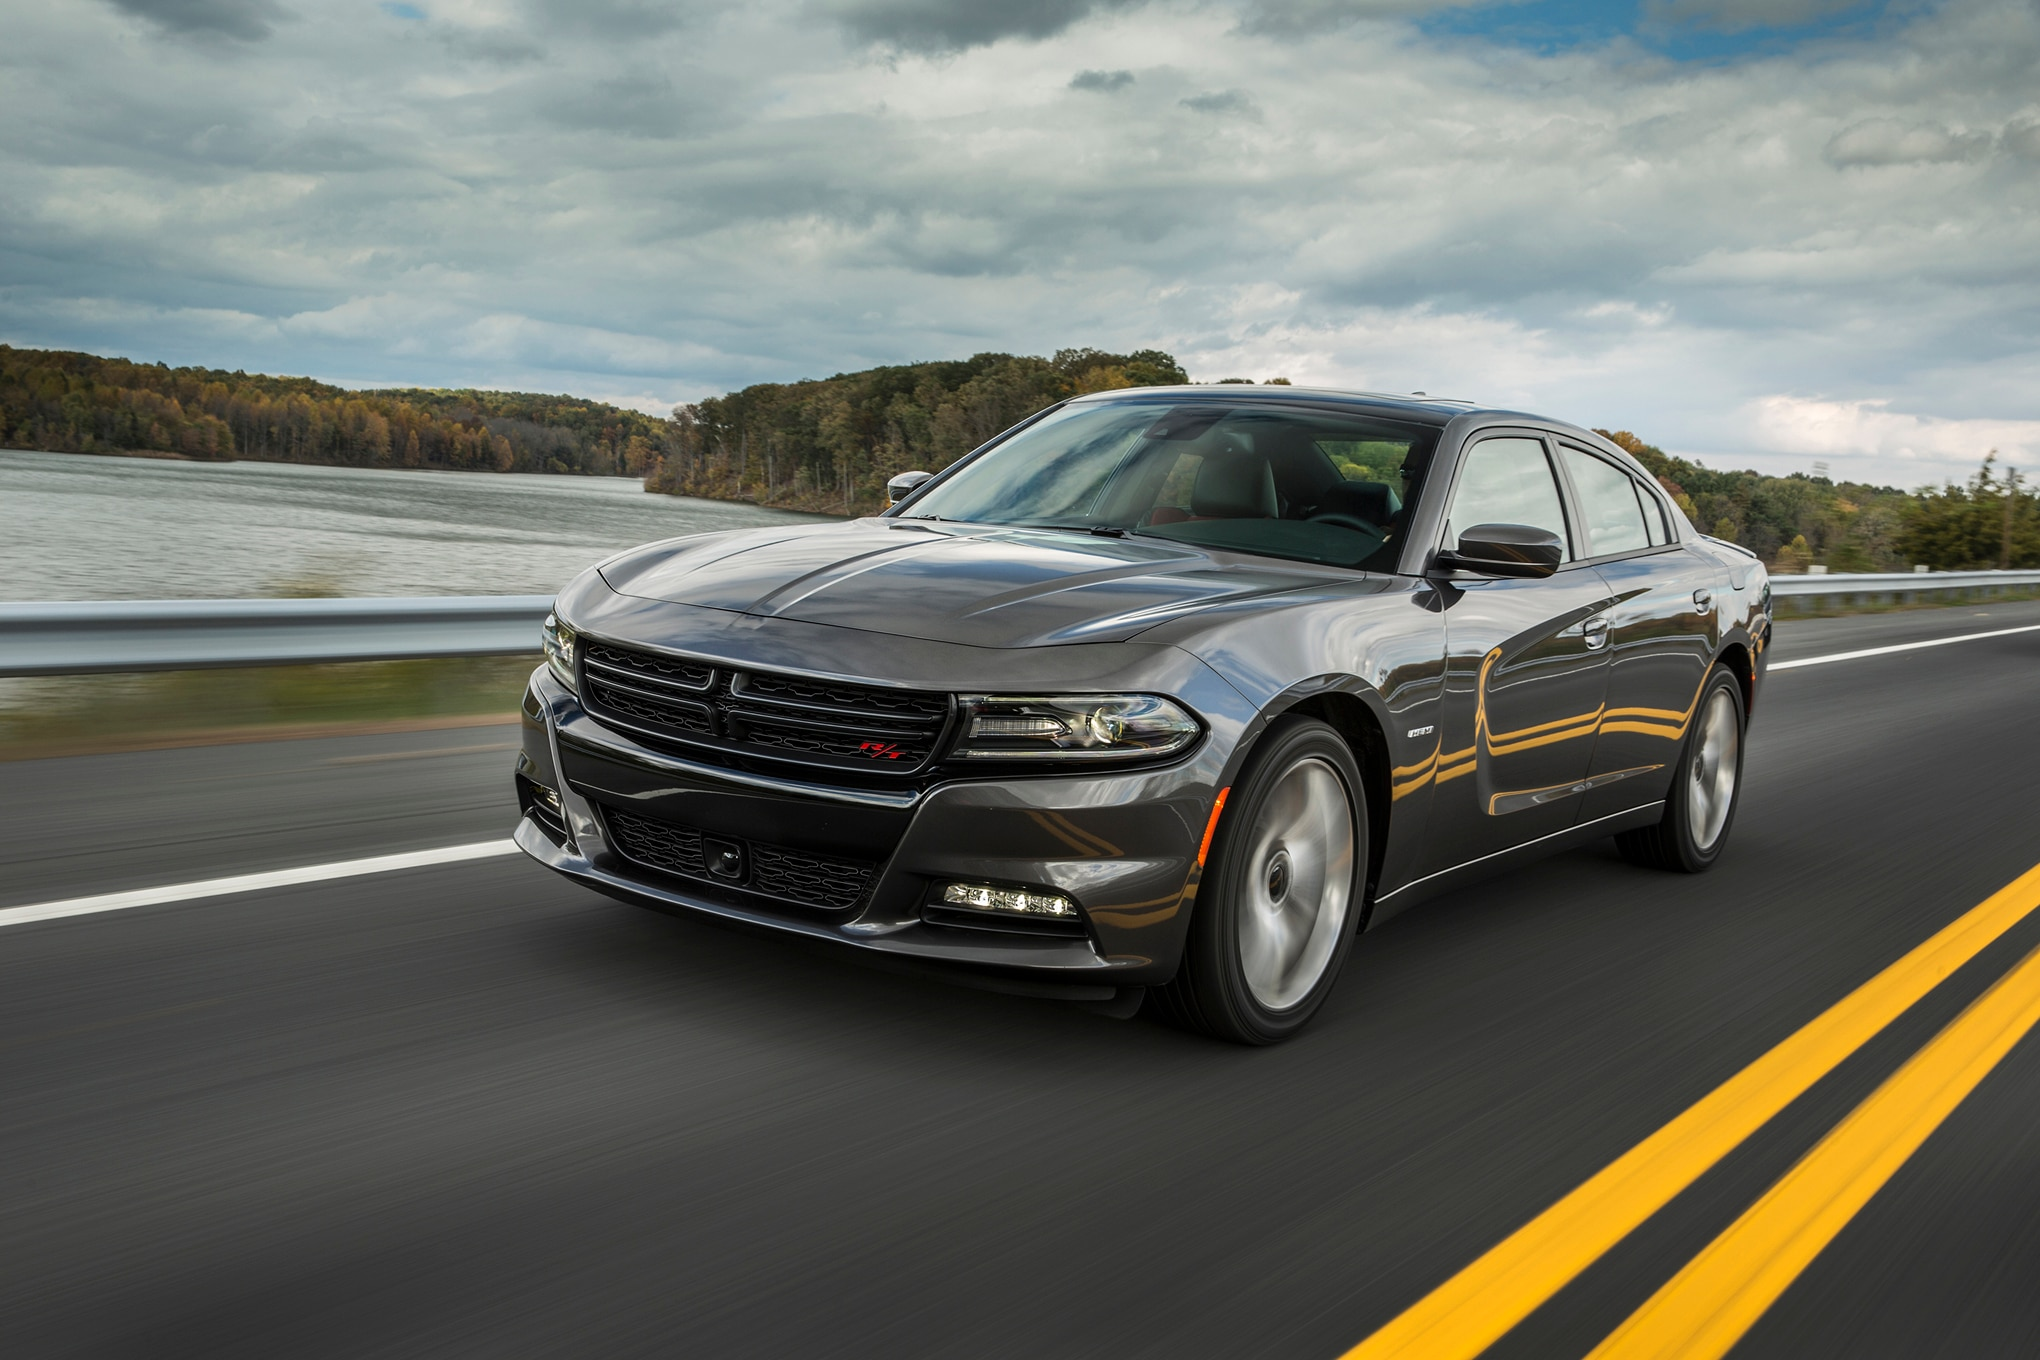 2016 Dodge Charger R/T Scat Pack Quick Take Review | Automobile Magazine